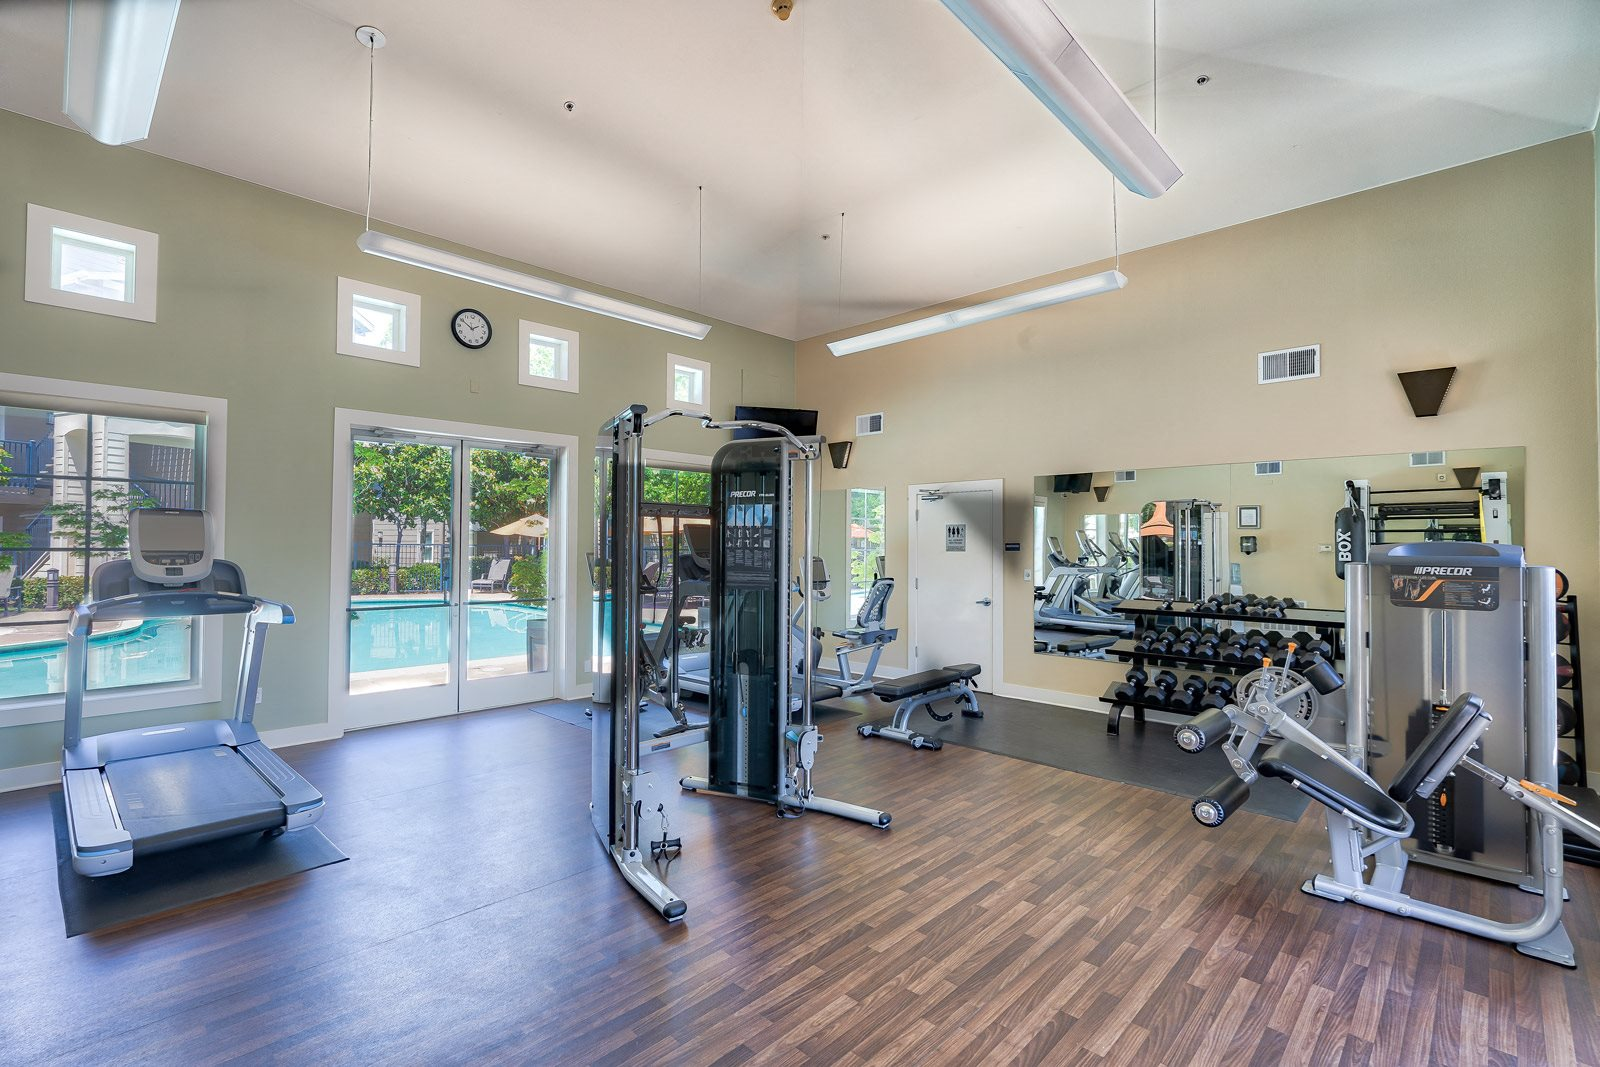 24-Hour, State-of-the-Art Fitness Center at The Kensington, 94566, CA